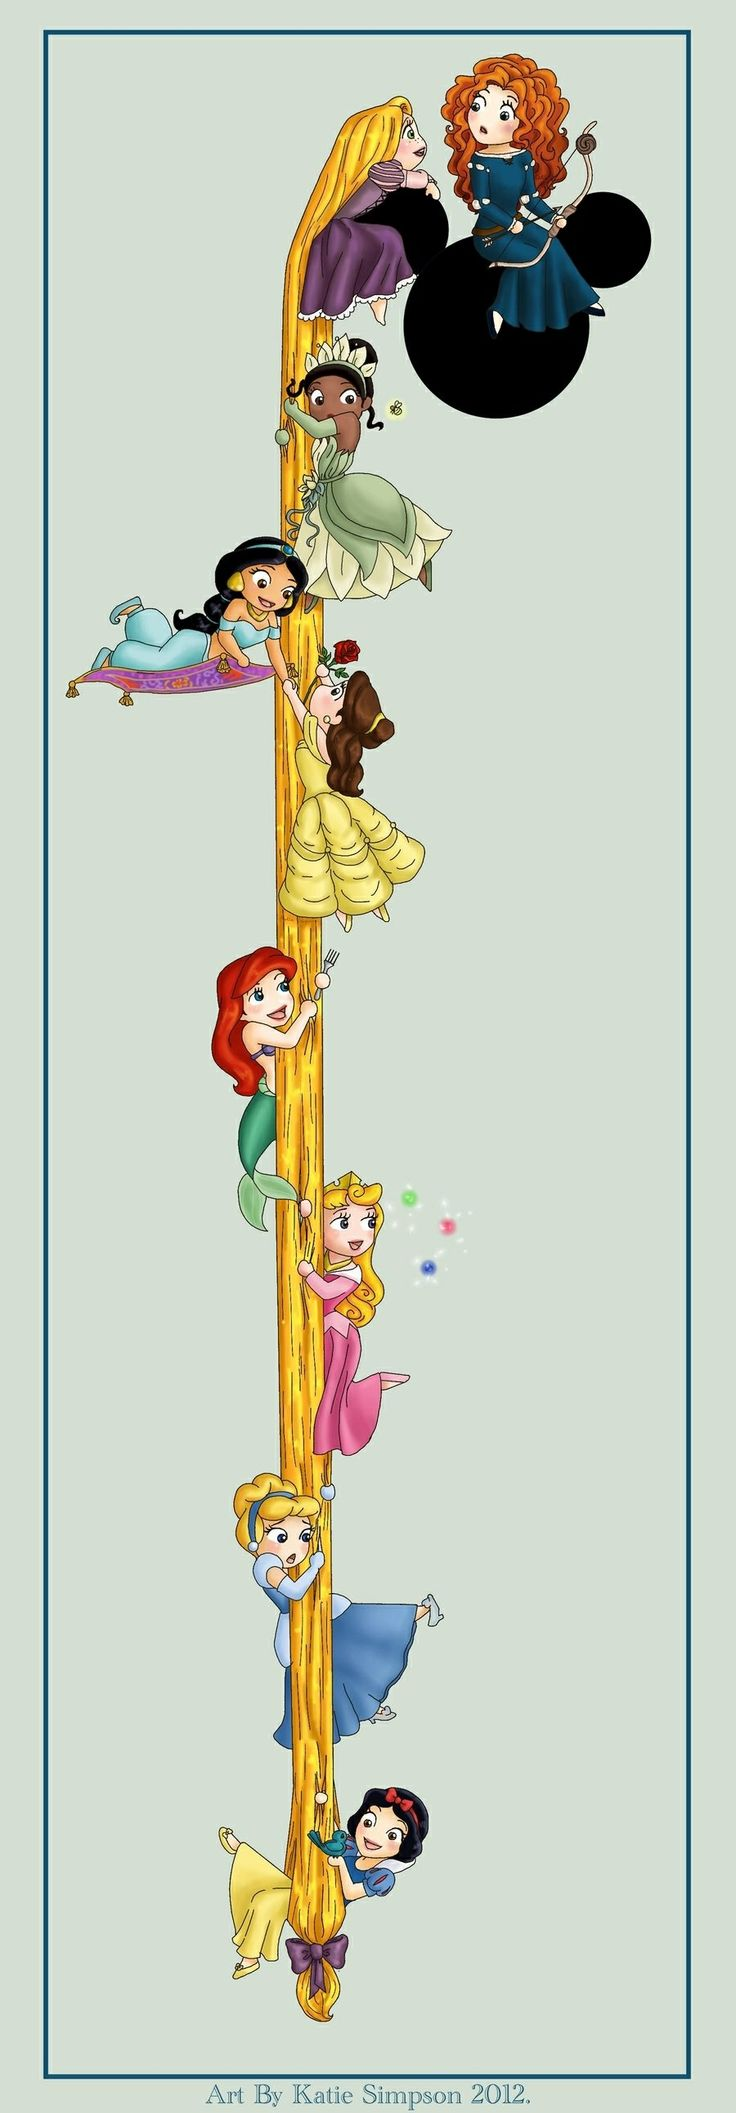 That is adorable Disney princesses from oldest to newest!